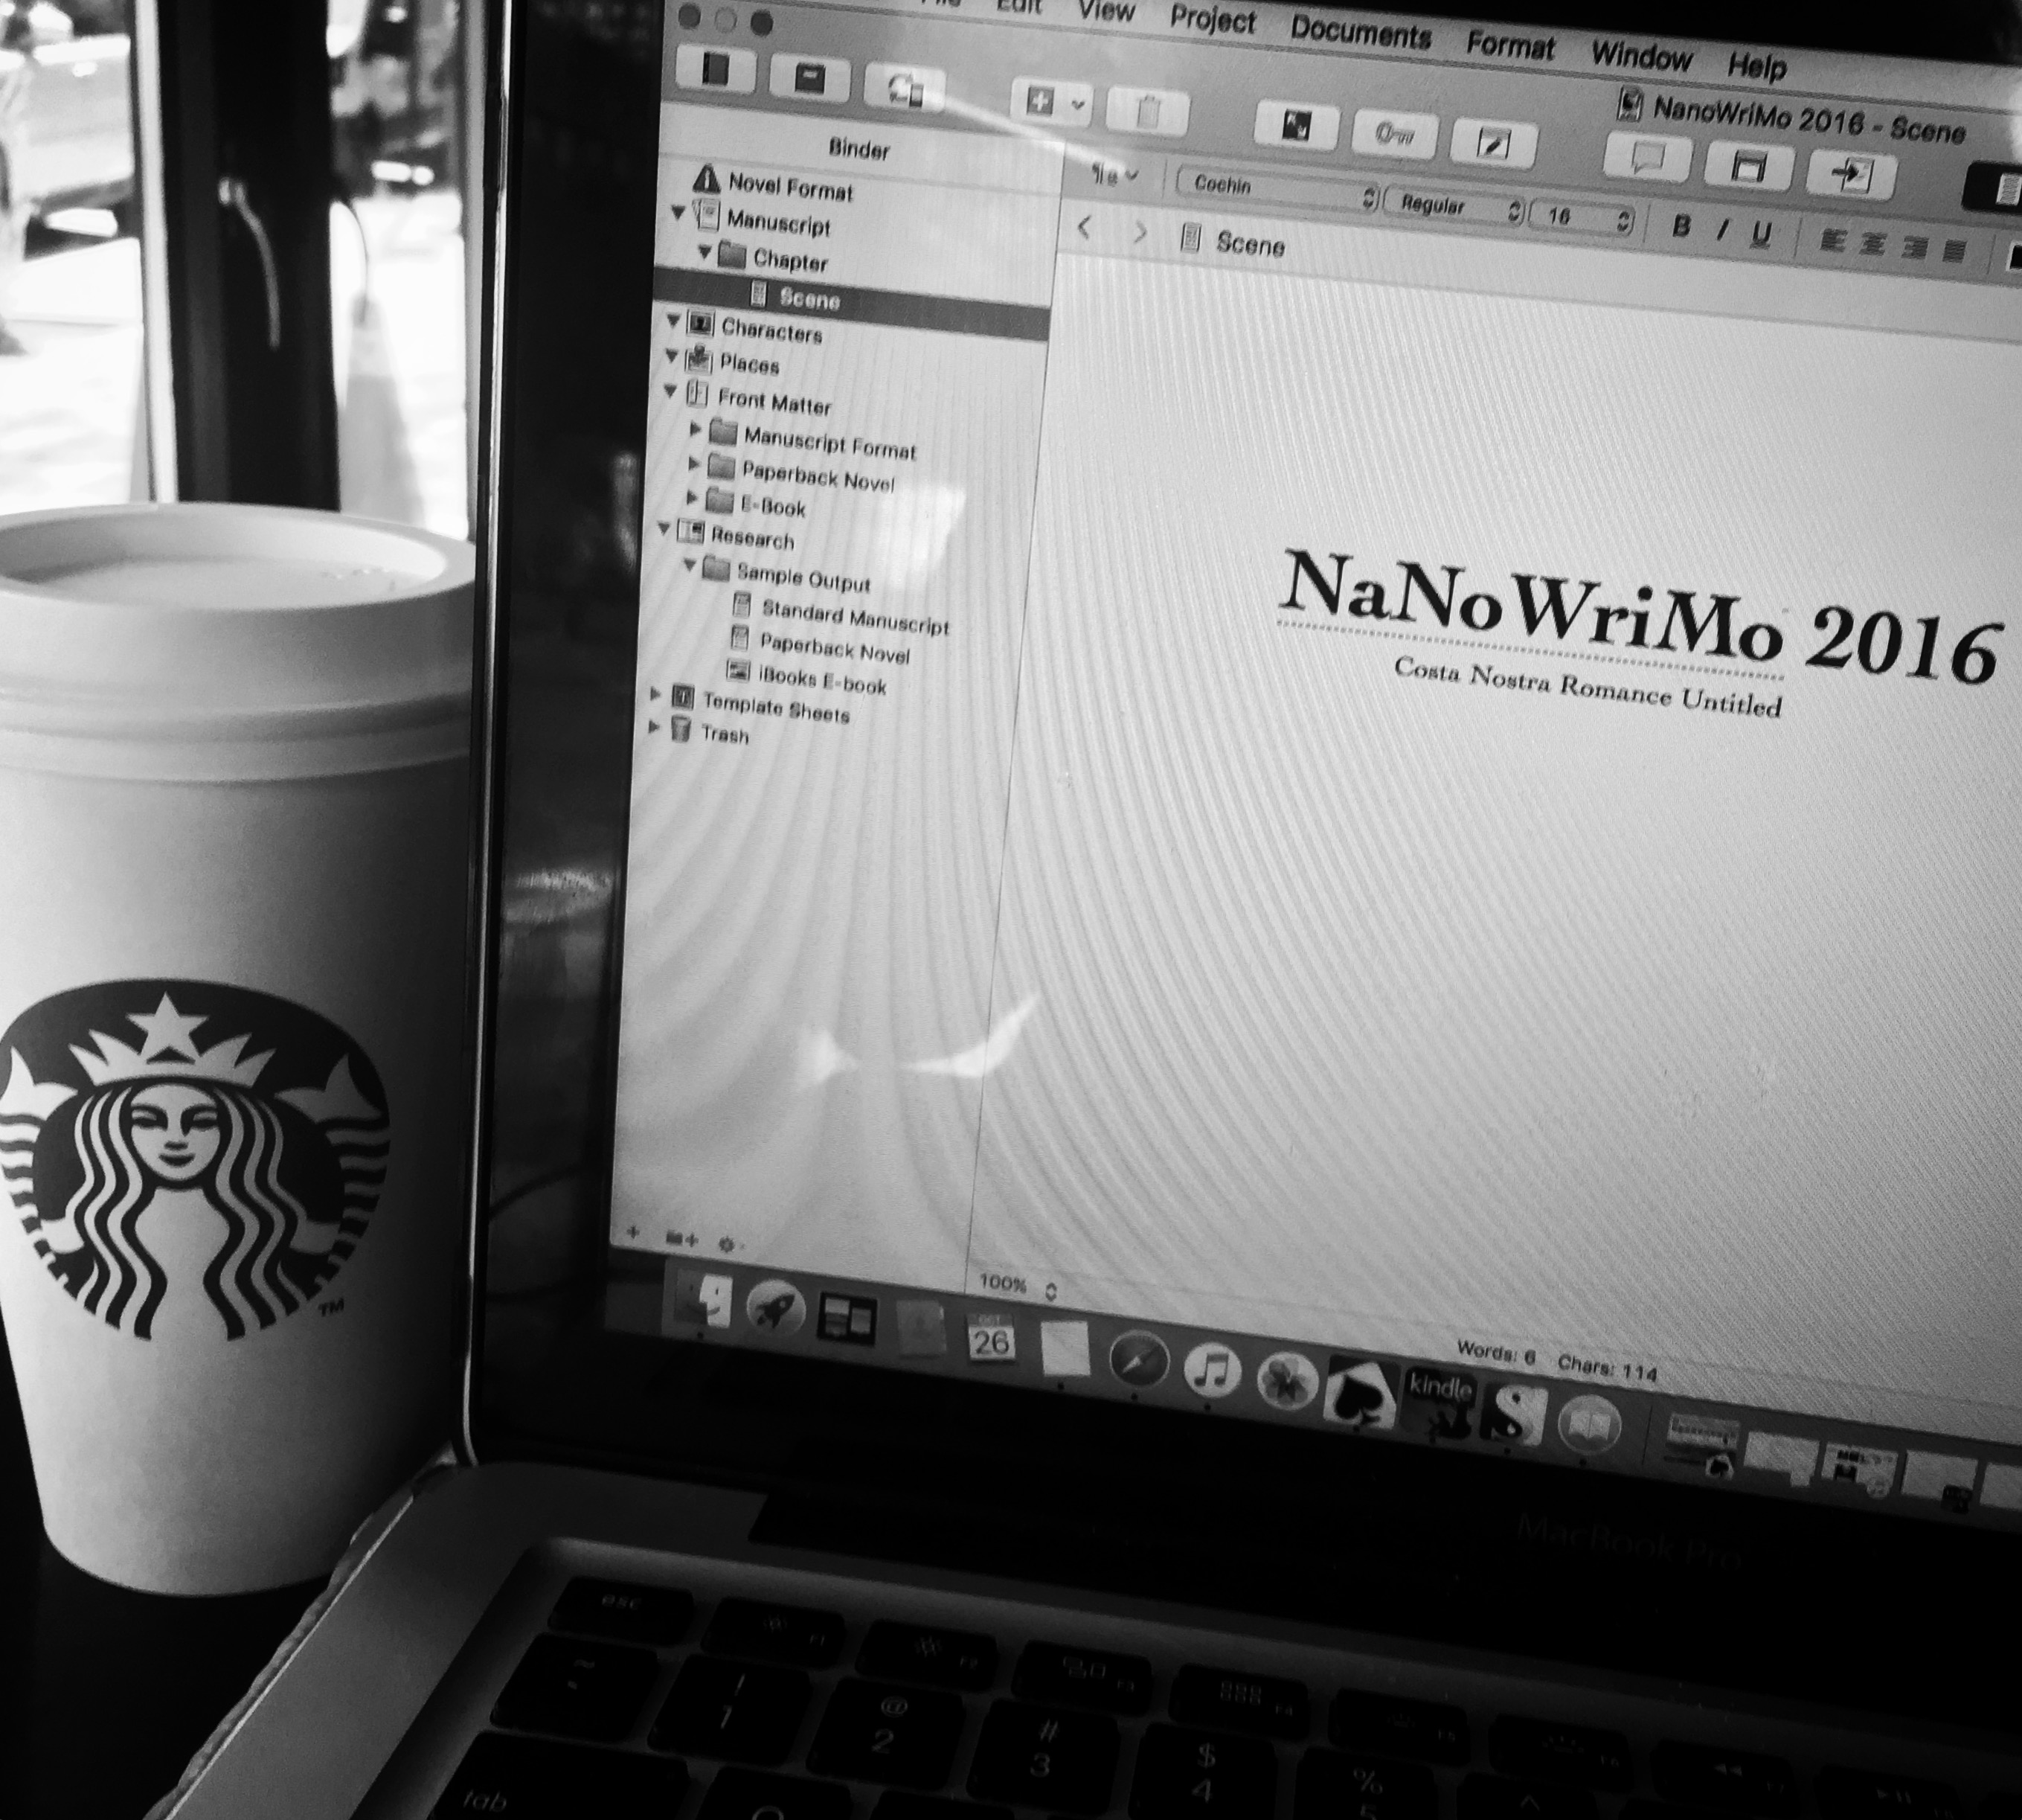 NaNoWriMo 2016 in the Books (Literally)